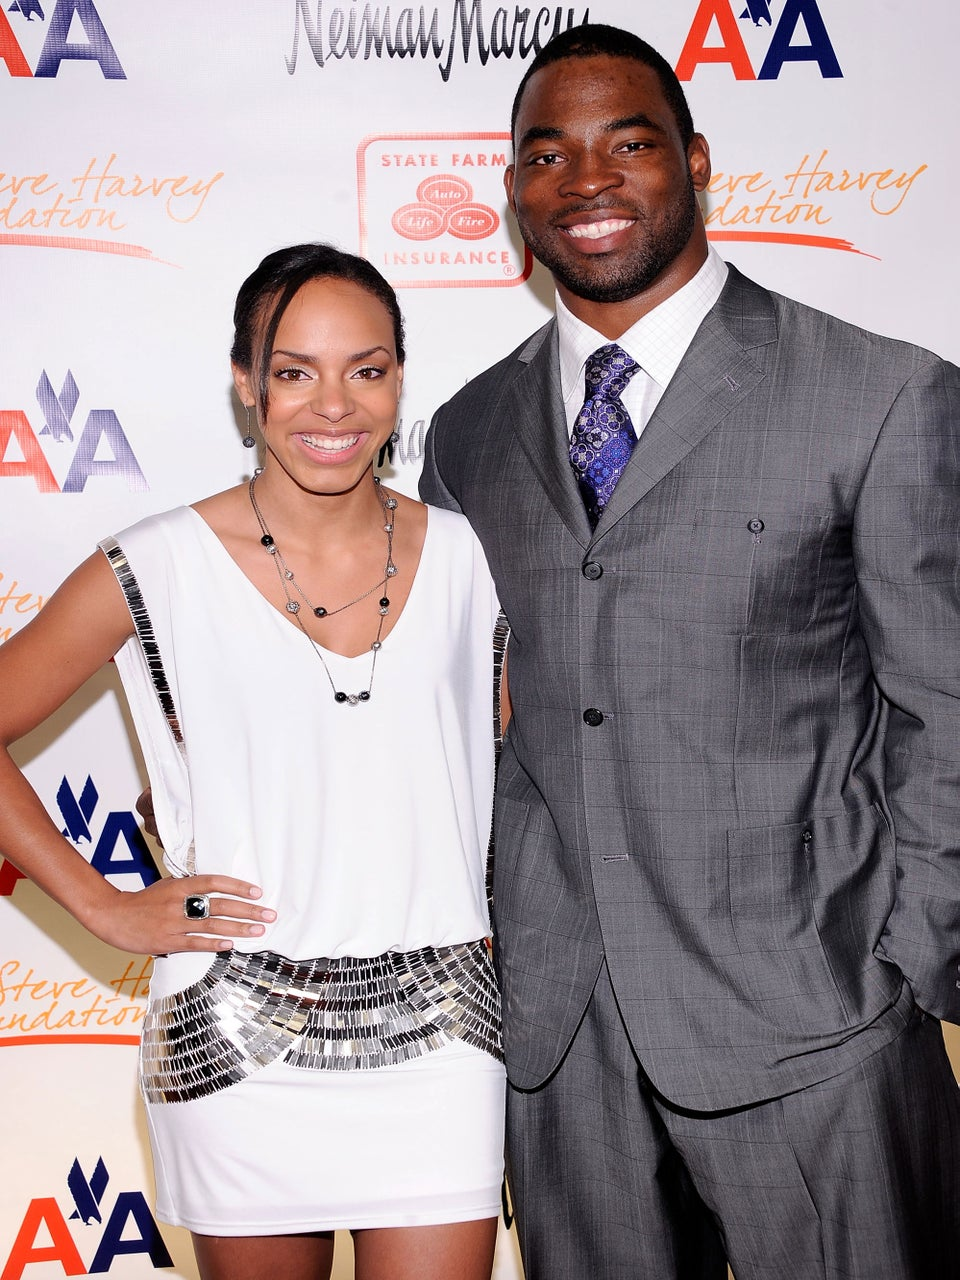 NFL Player Justin Tuck and Wife Lauran on Their Book Charity and Giving Back